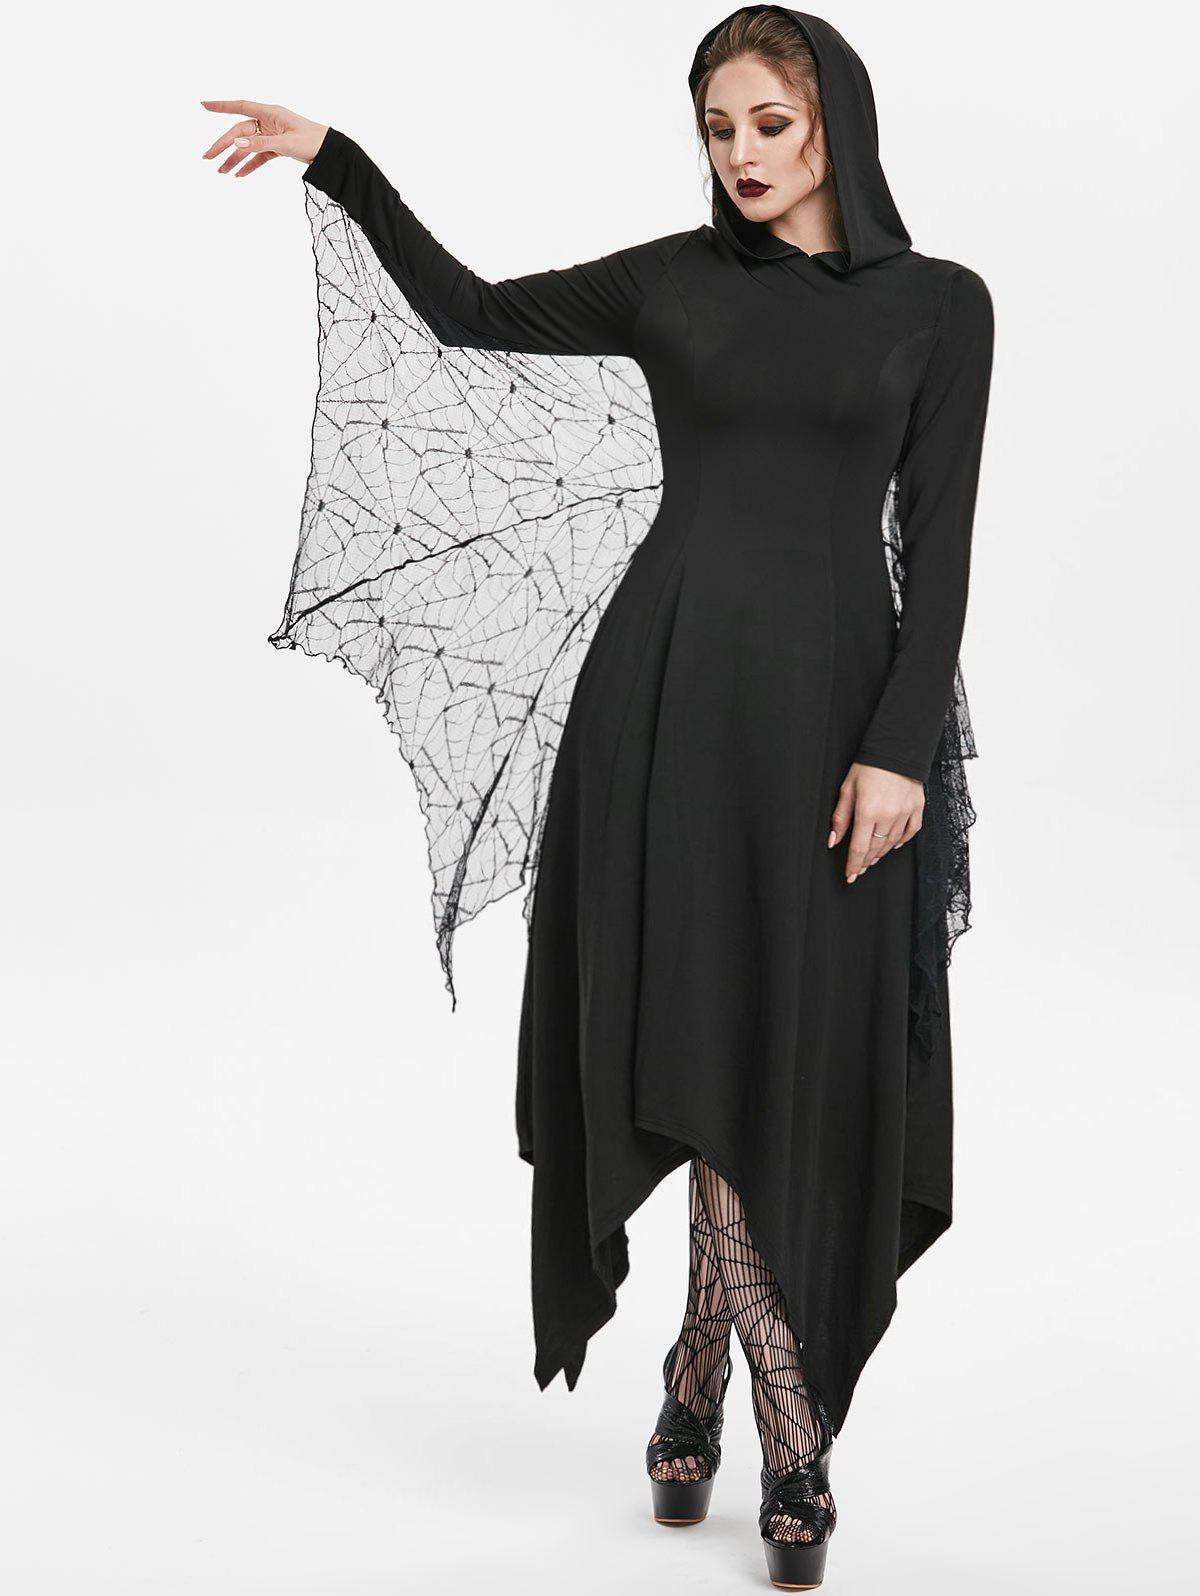 Sale Halloween Handkerchief Hooded Gothic Dress With Bat Wings